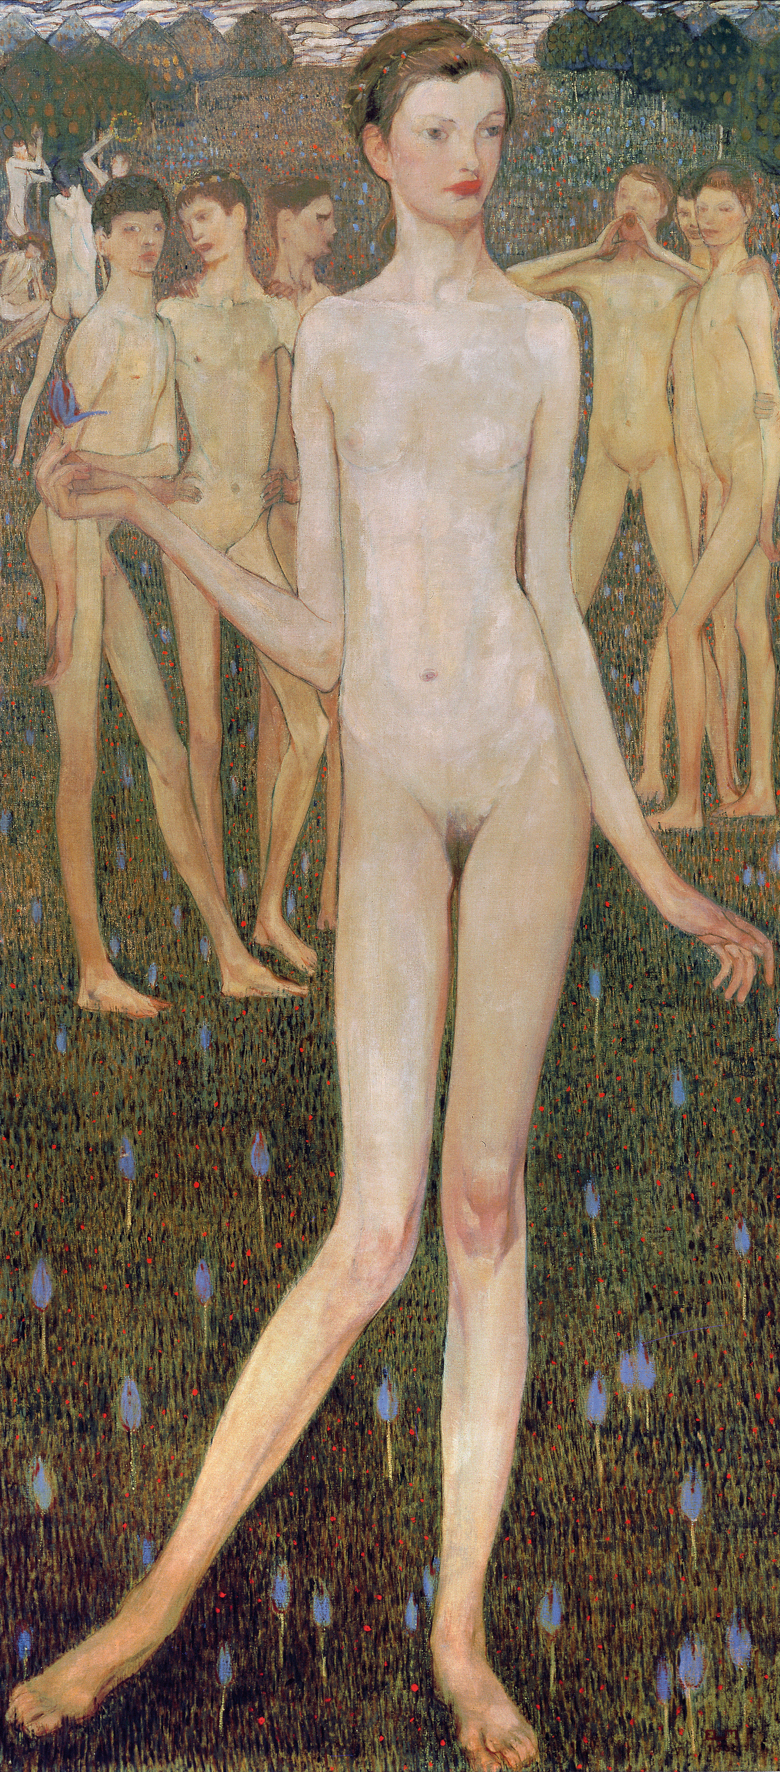 young woman in the front - in the back young men, naked as her.